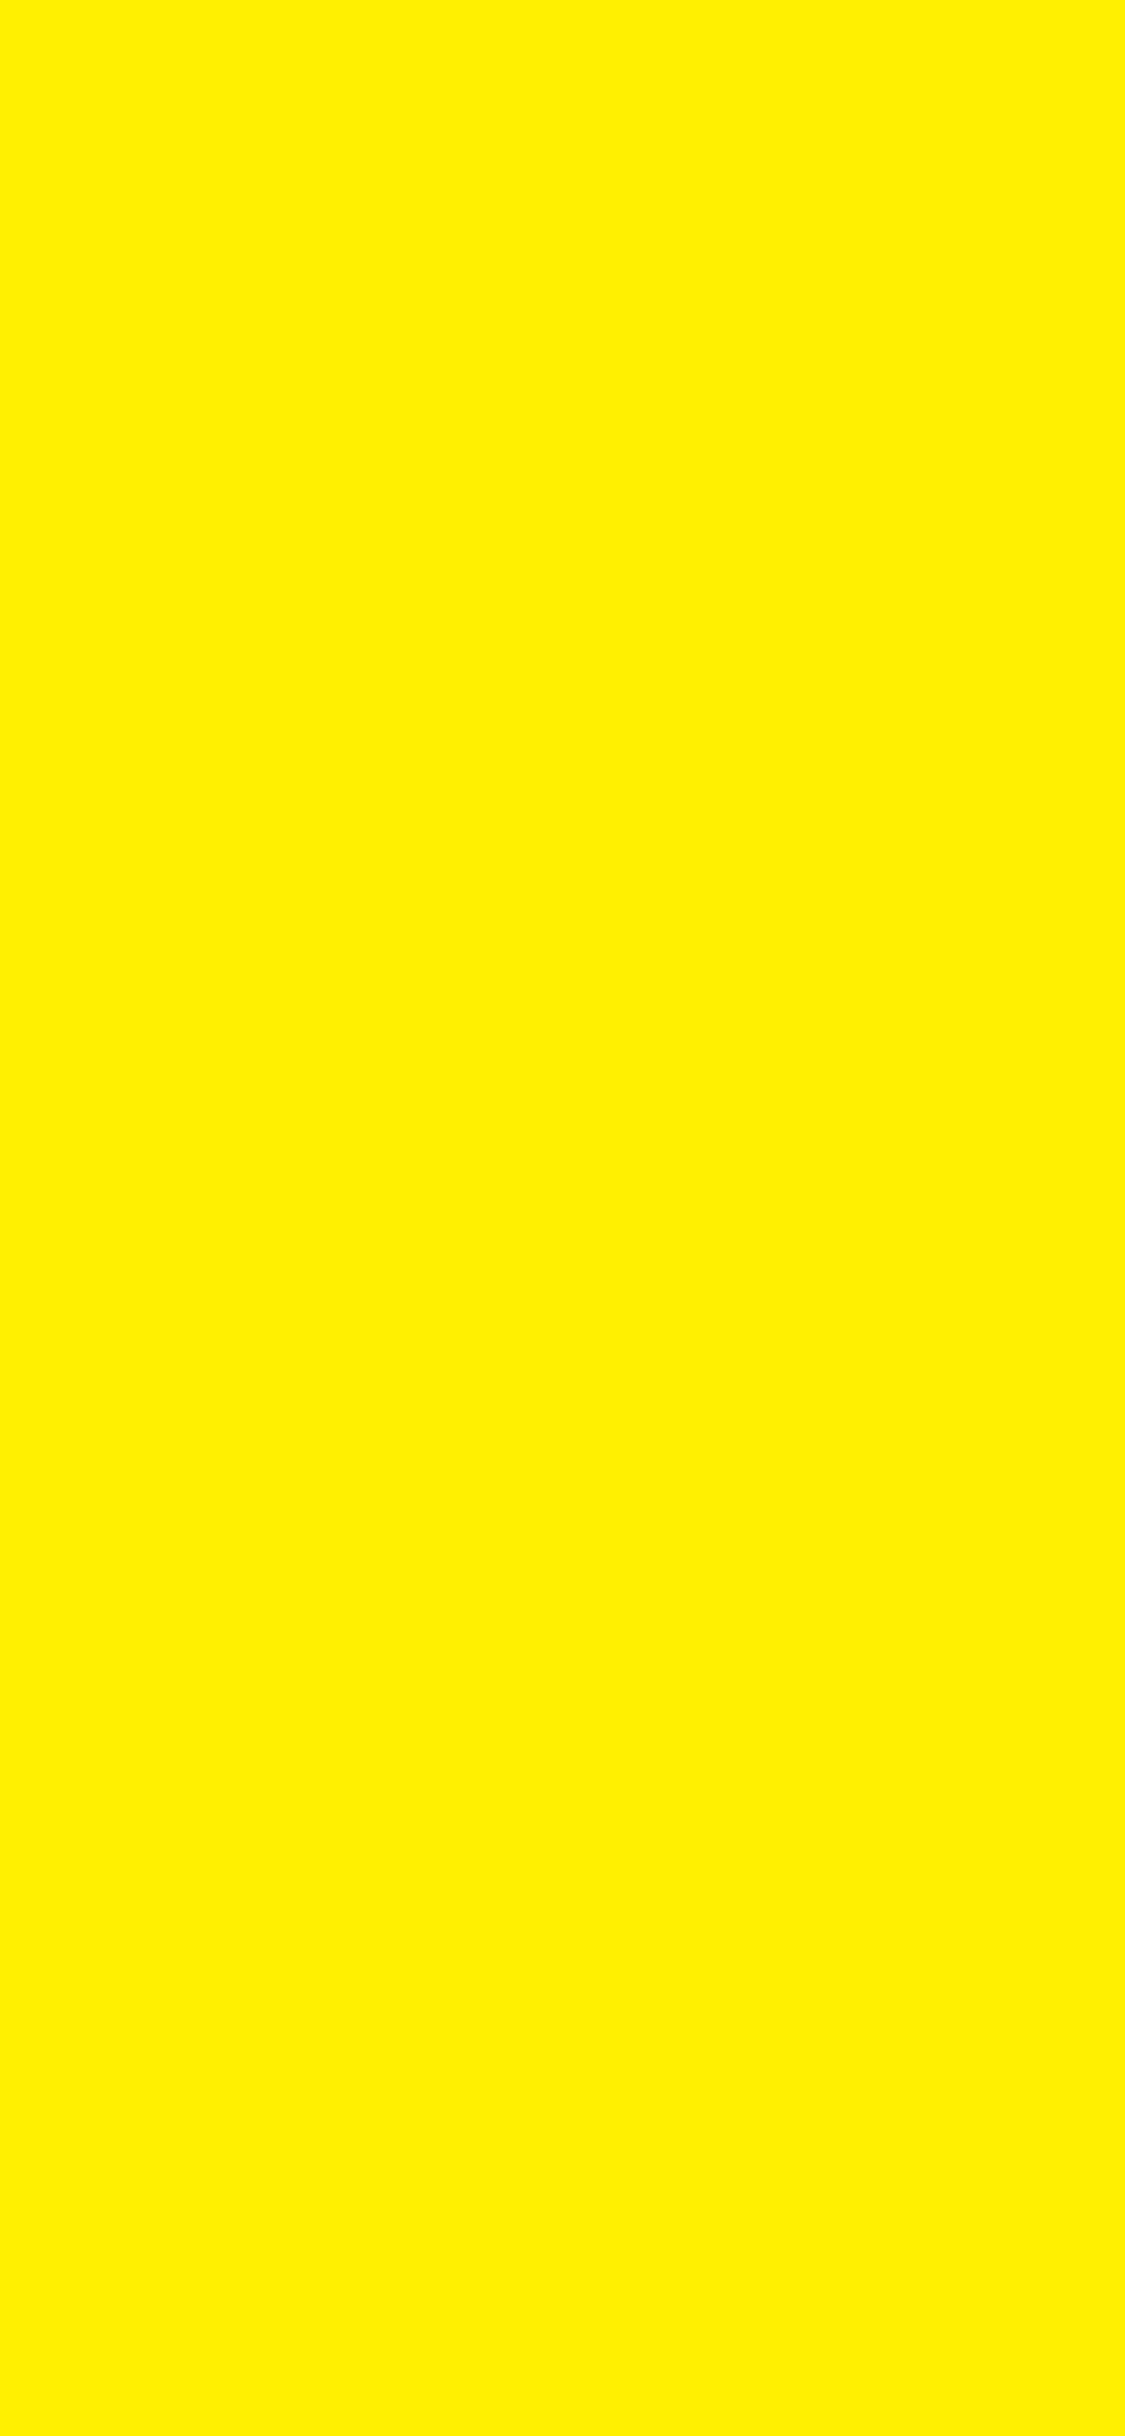 1125x2436 Yellow Process Solid Color Background